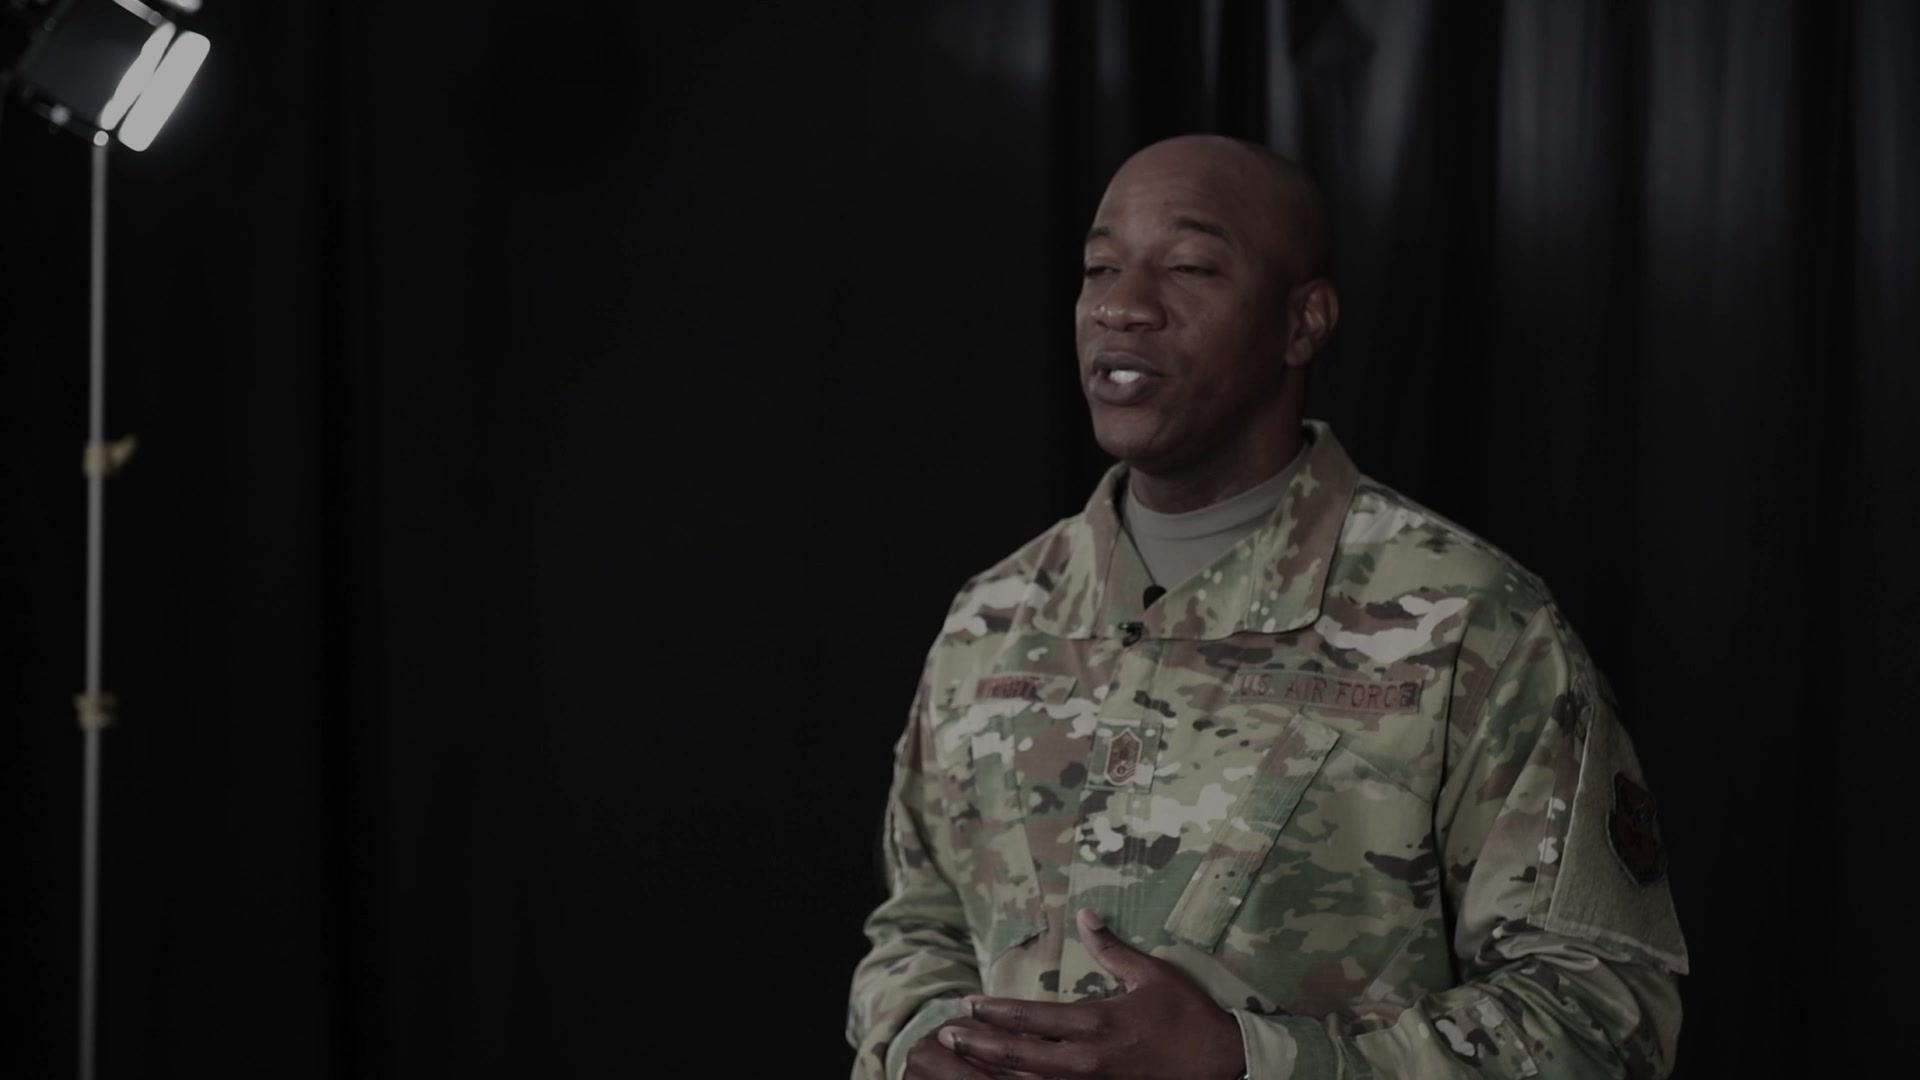 A resiliency message to Airmen from Chief Master Sergeant of the Air Force, Kaleth O. Wright.